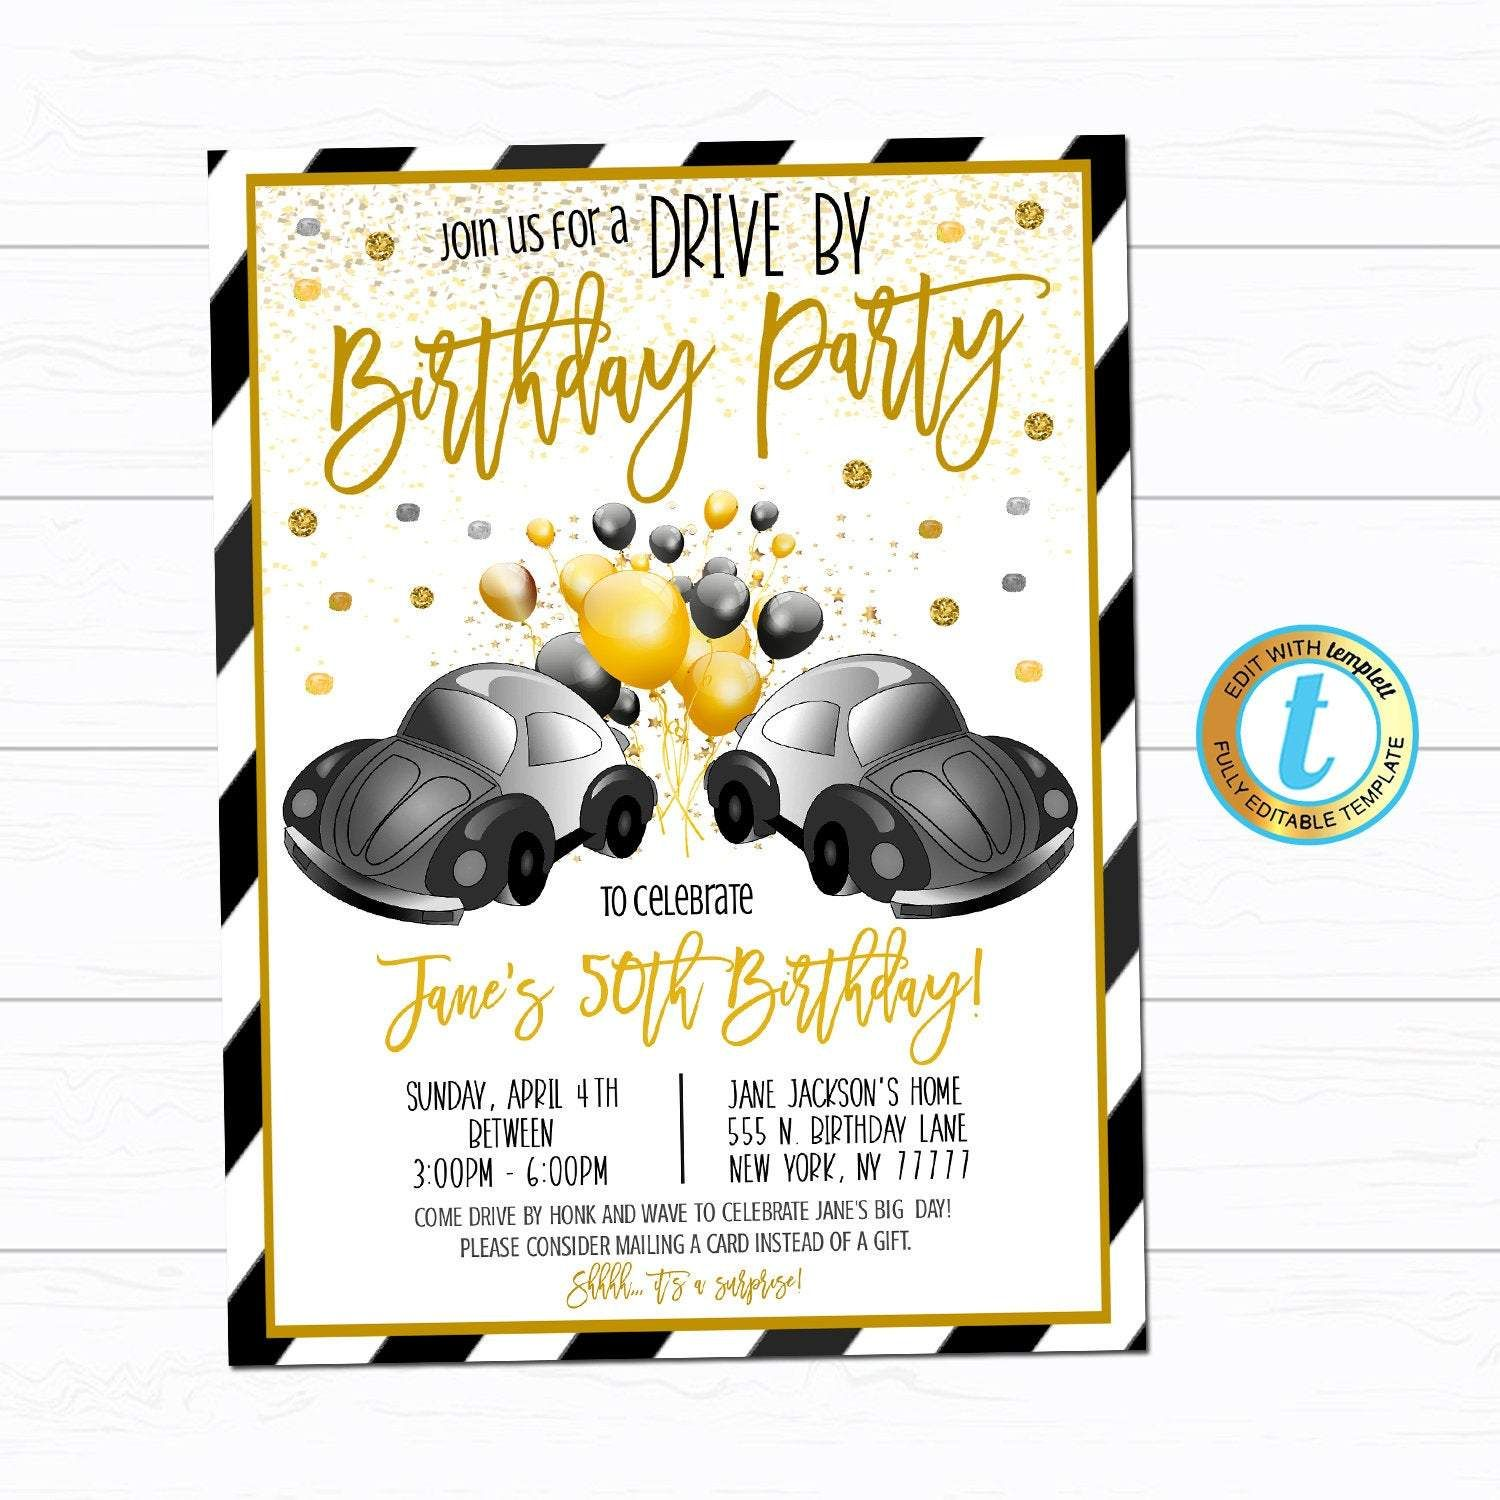 Pin on Drive By Parade Party Invitations